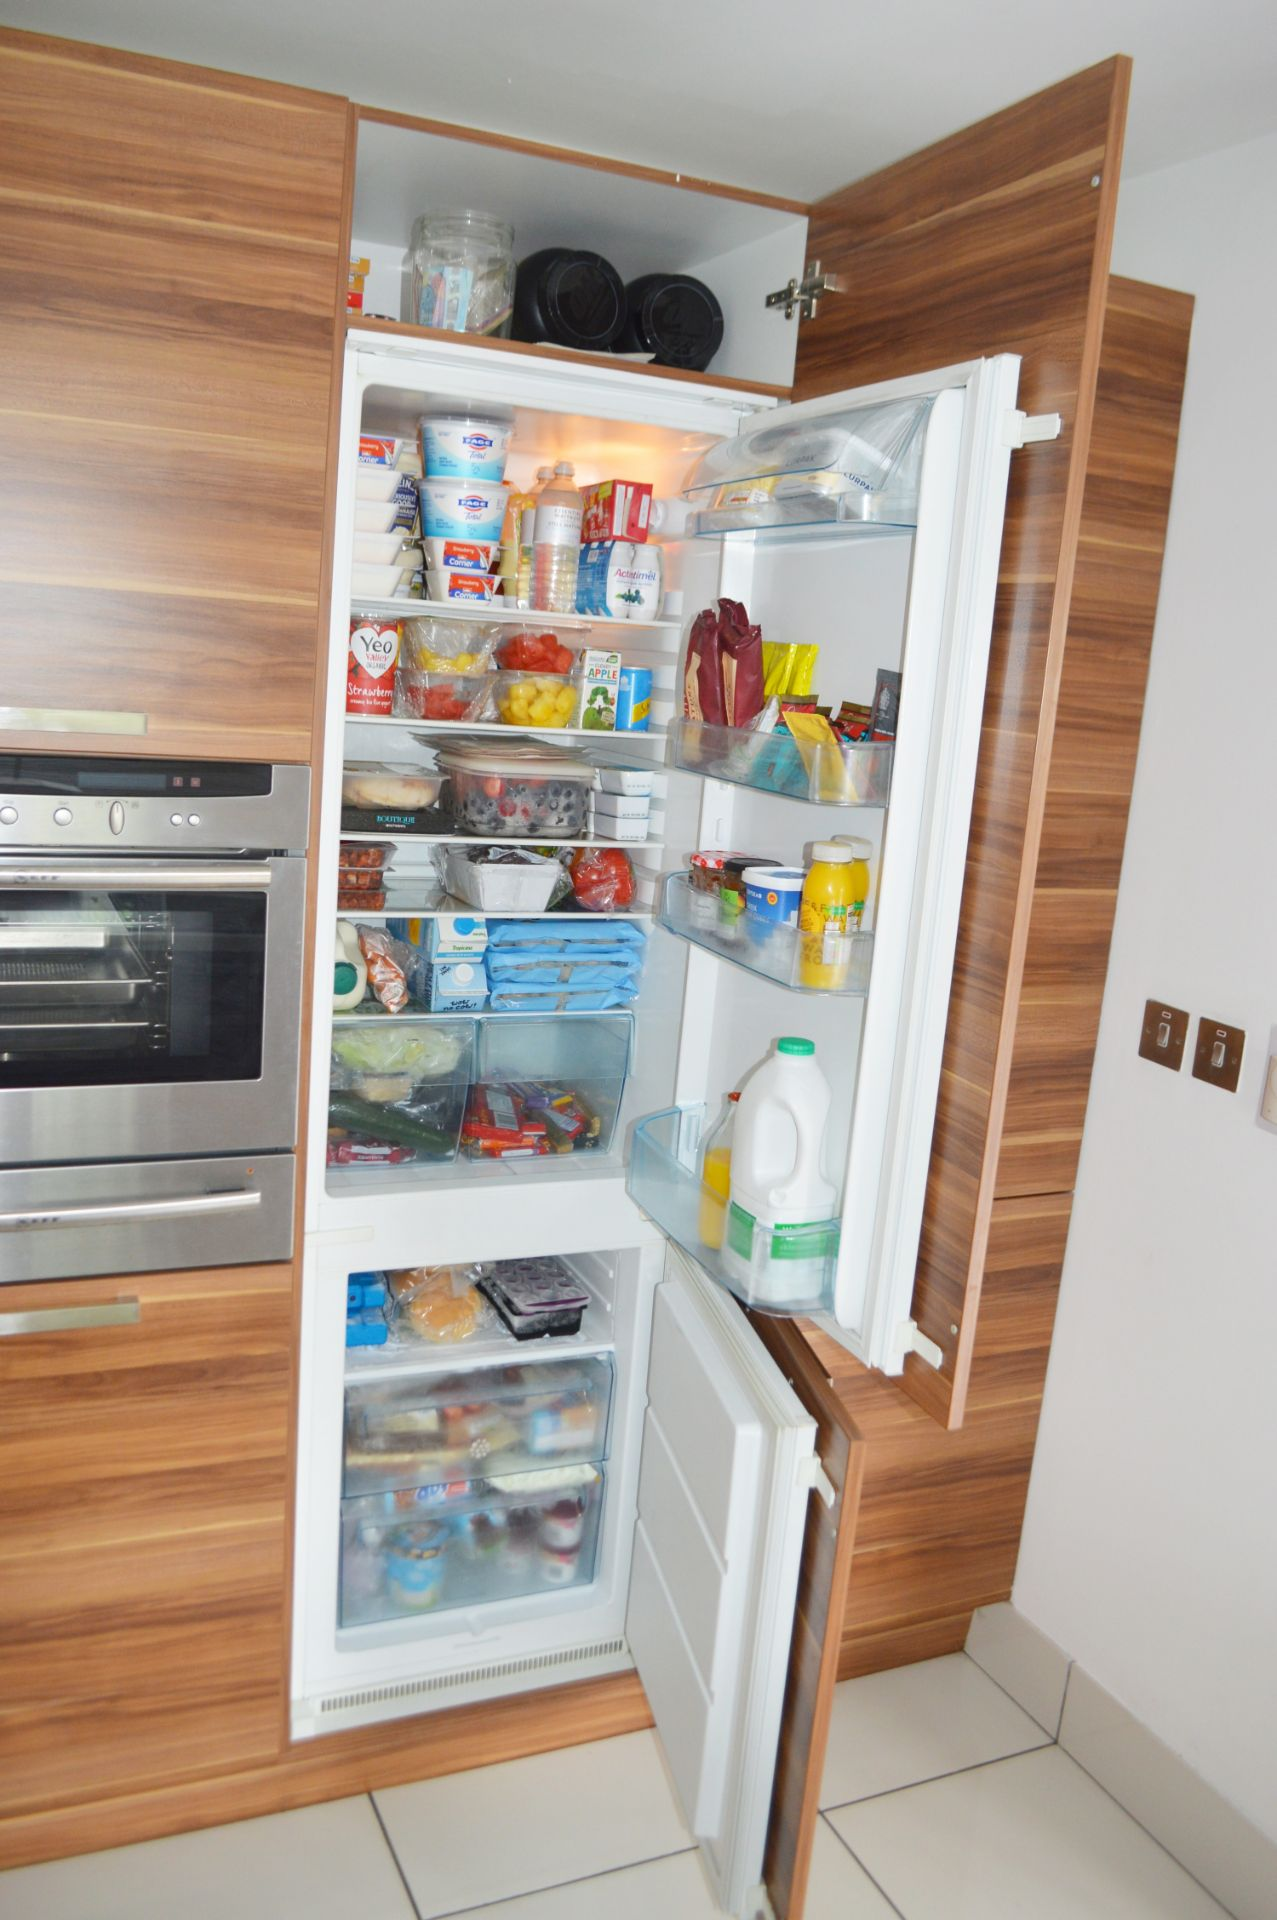 1 x Contemporary Bespoke Fitted Kitchen With Integrated Neff Branded Appliances, Quartz Worktops - Image 10 of 52